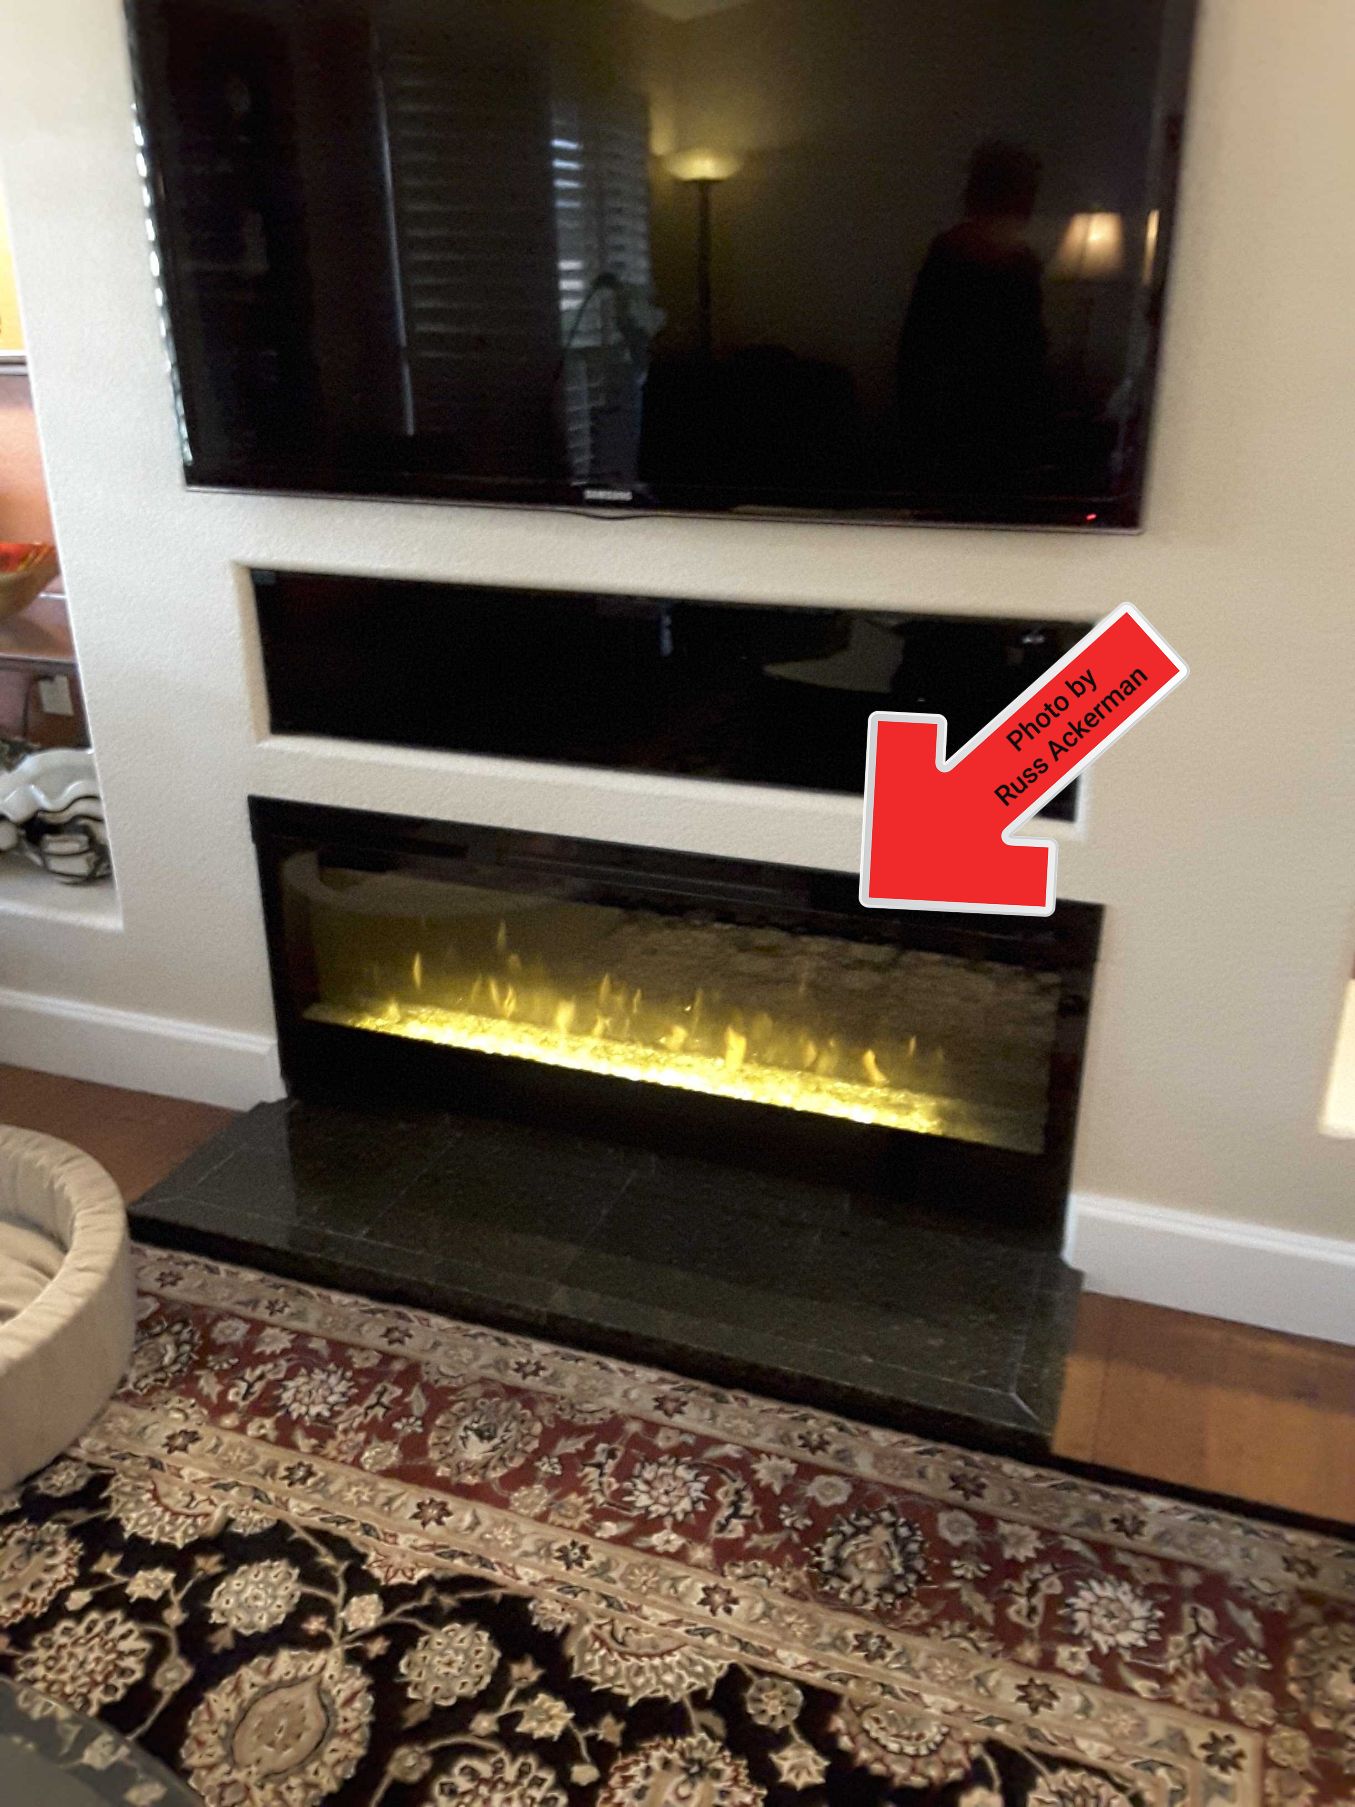 Even though this is just a light show versus a real fireplace, I would still test them if the remote was accessible.